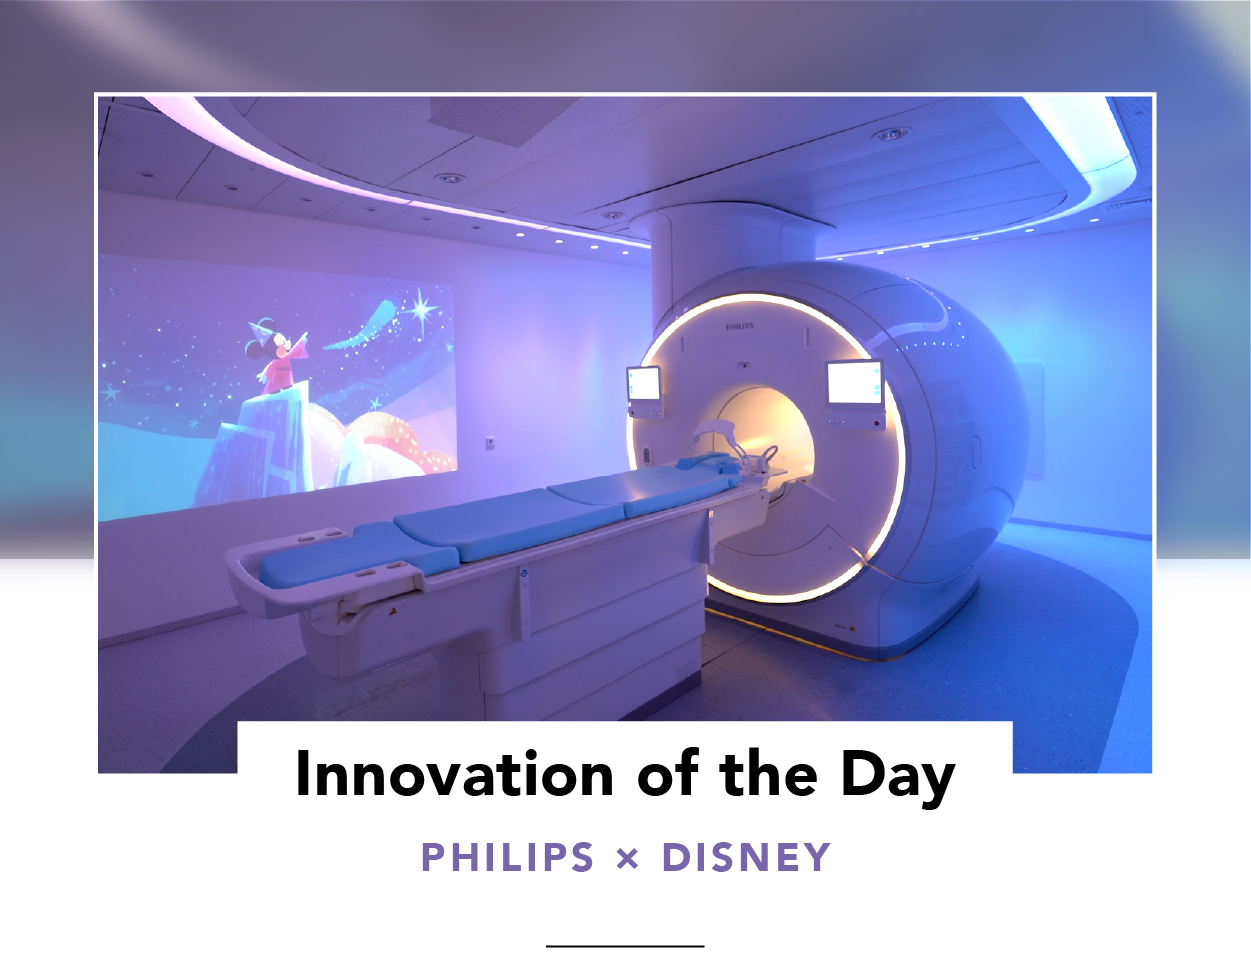 Exterior view of an MRI scanner with soft, ambient lighting and Mickey Mouse projected on a wall